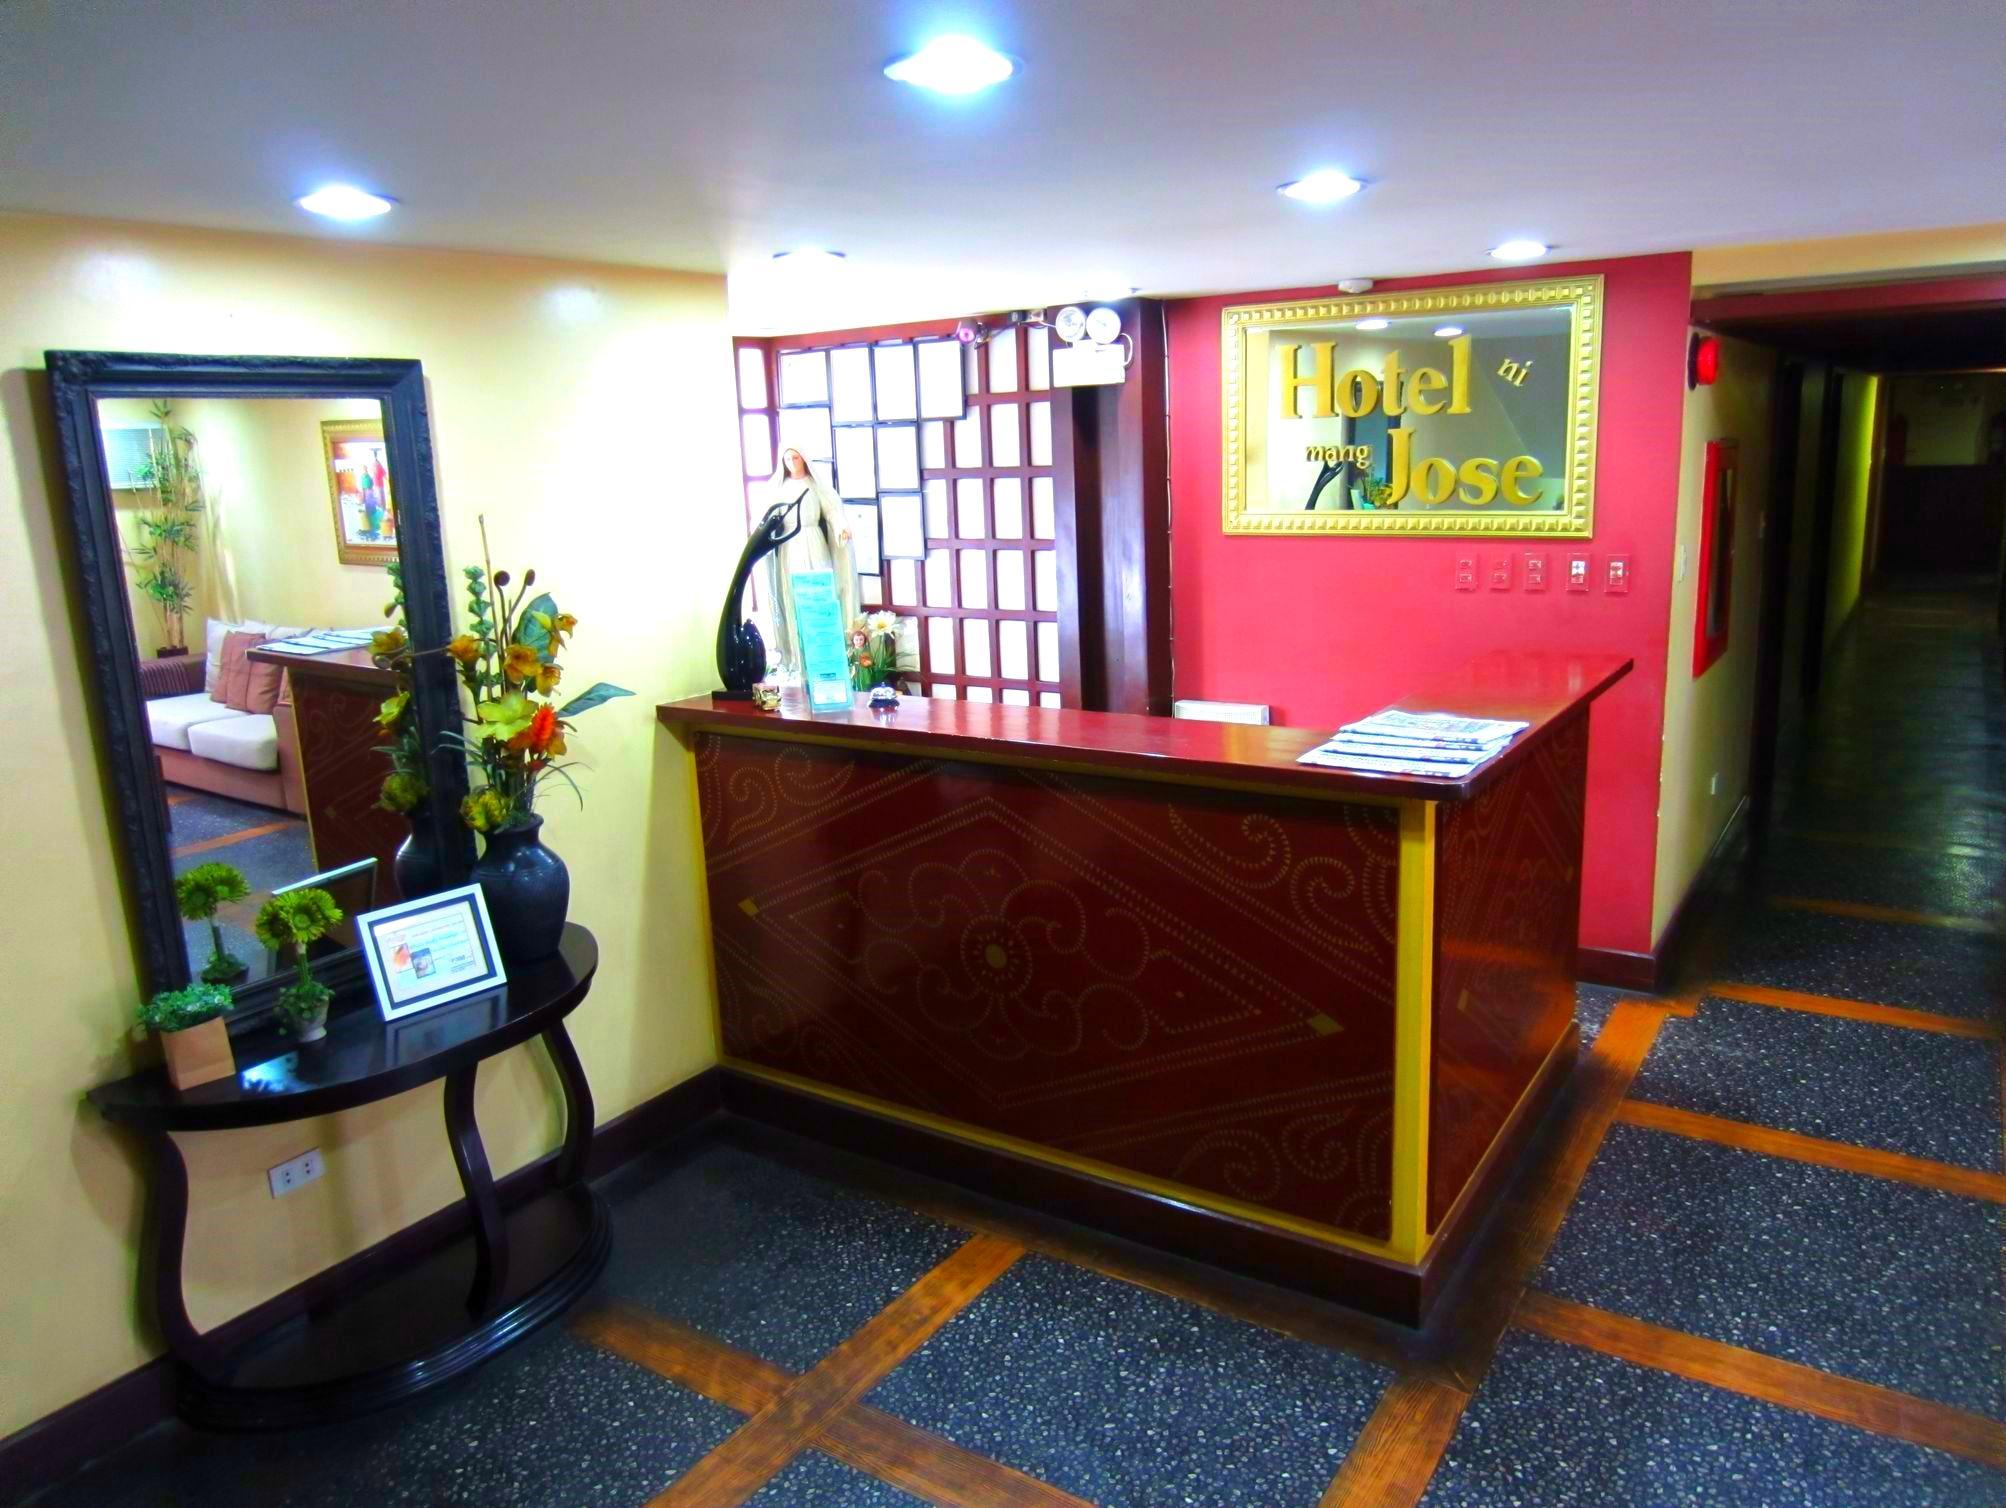 Hotel ni Mang Jose - Hotels and Accommodation in Philippines, Asia